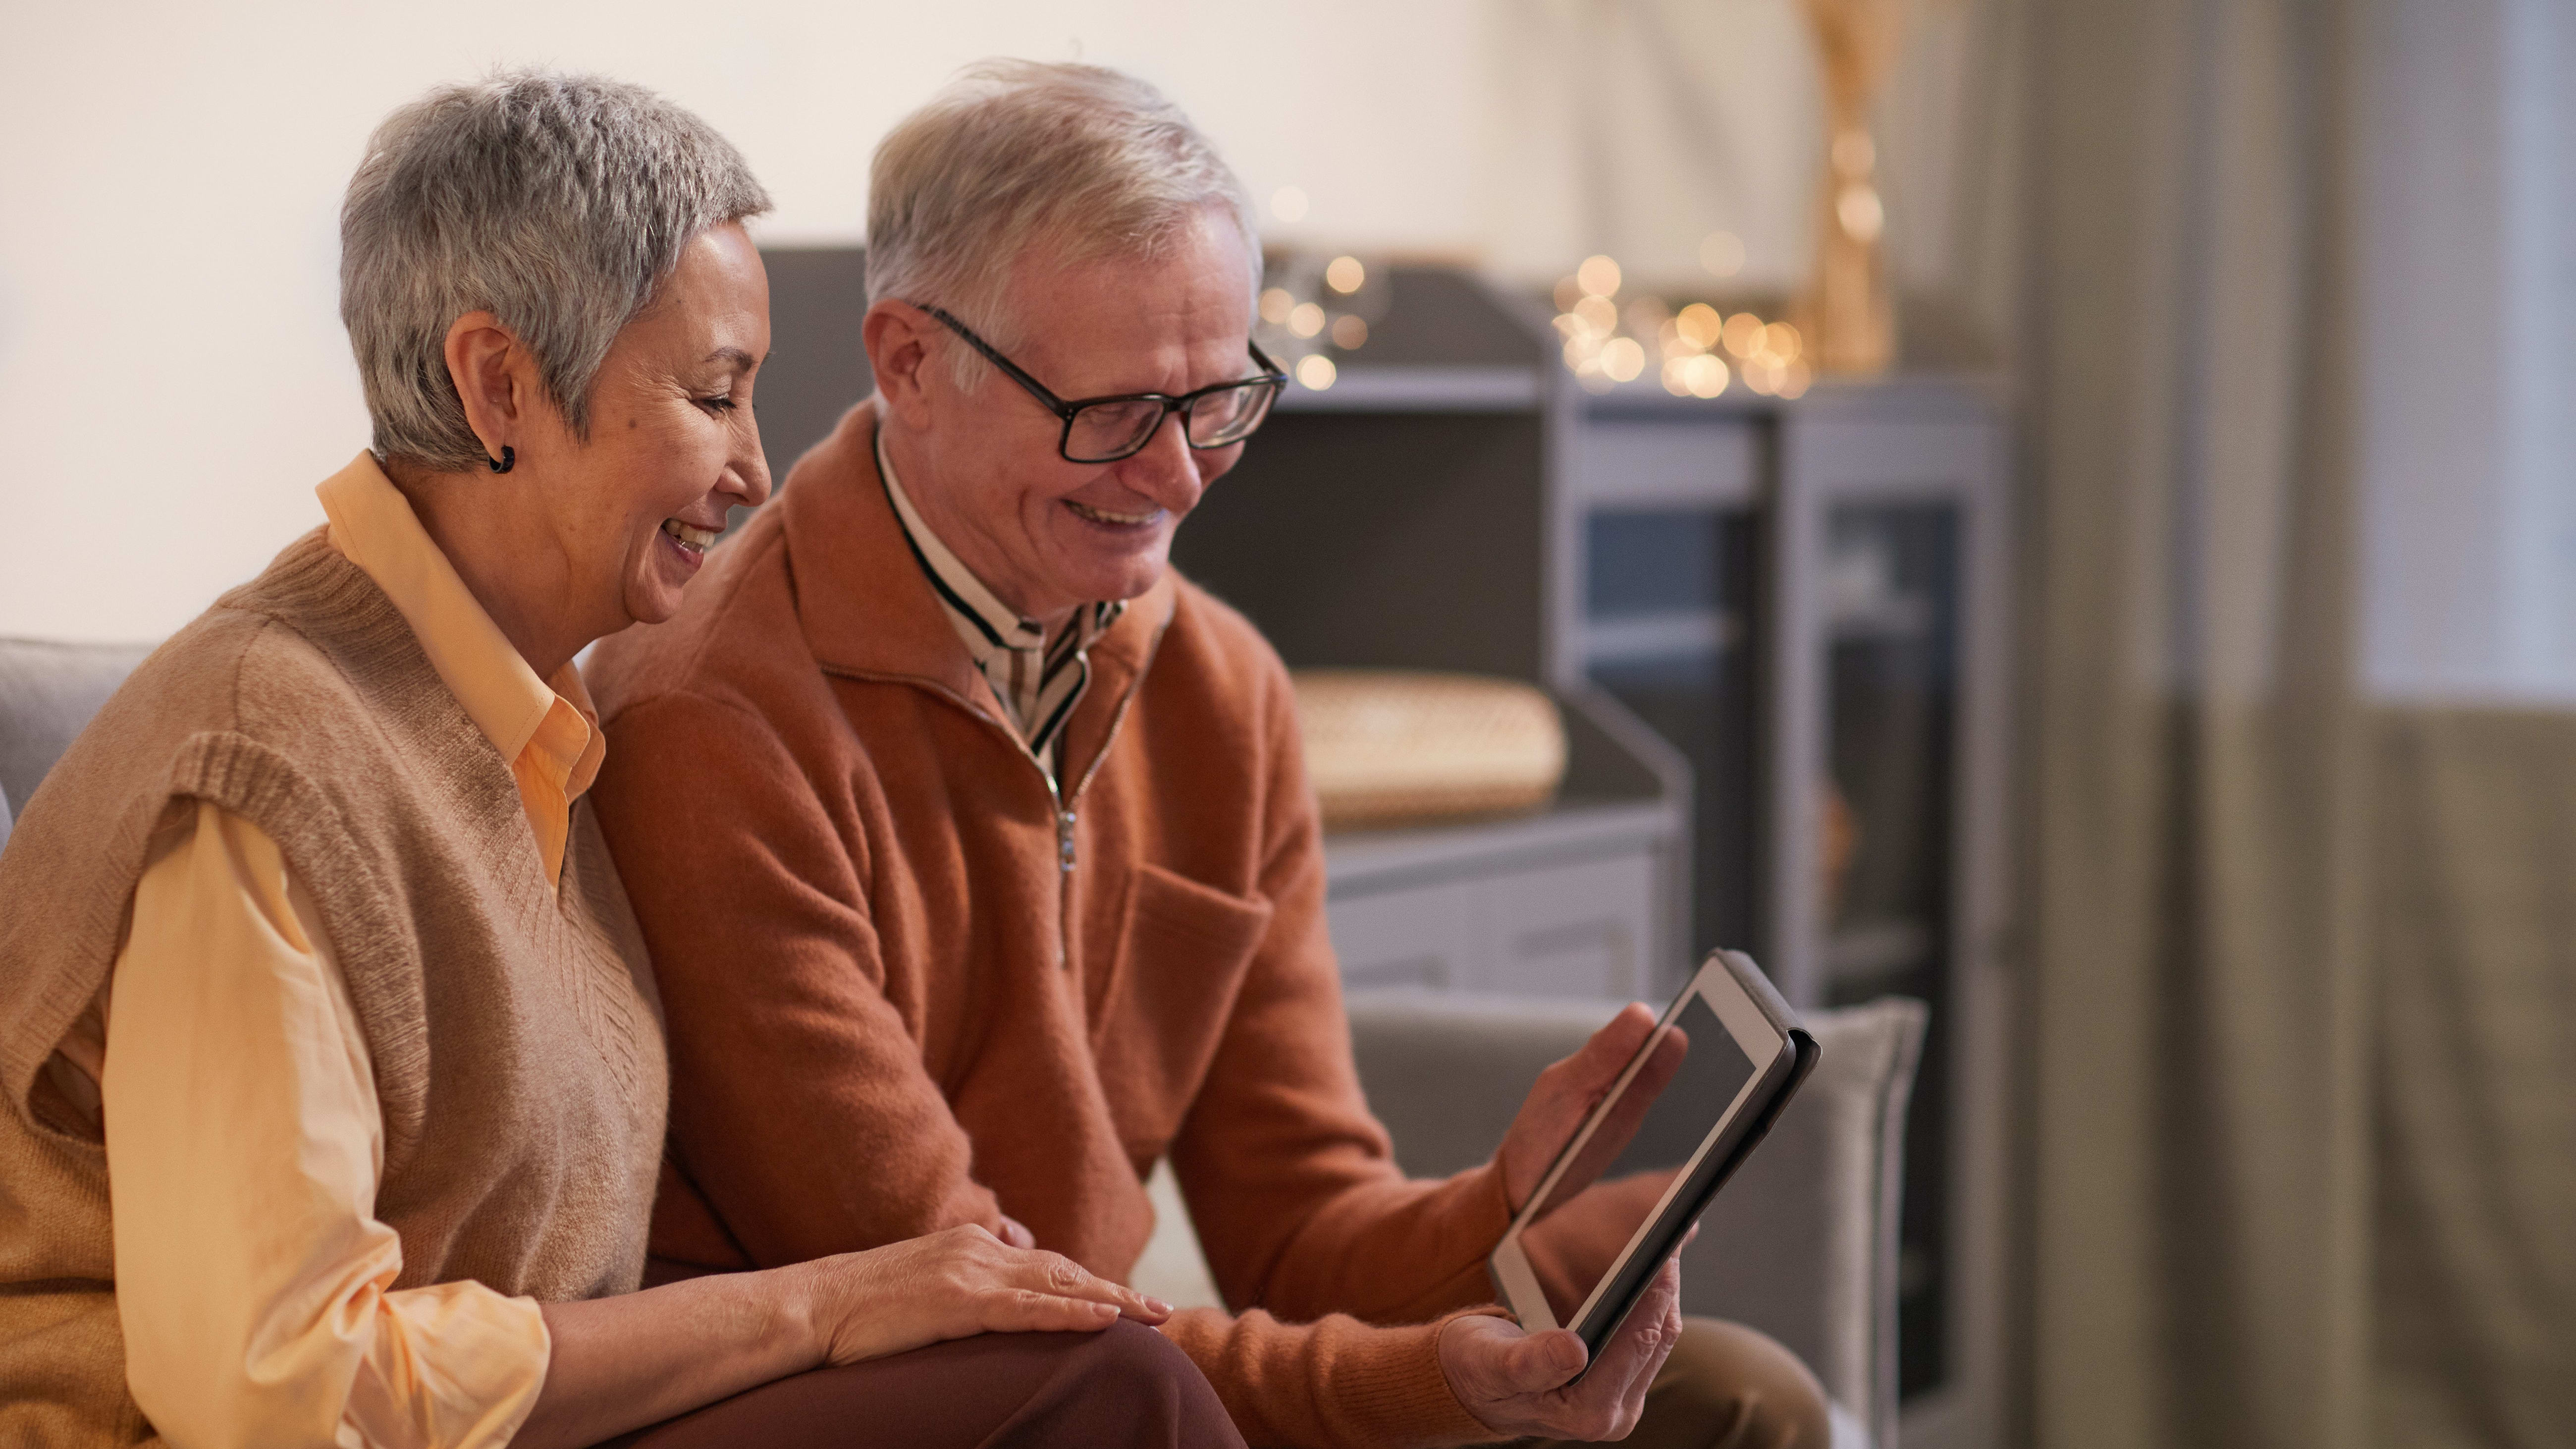 EU-funded ESCAPE project launched to address multimorbidity in elderly patients